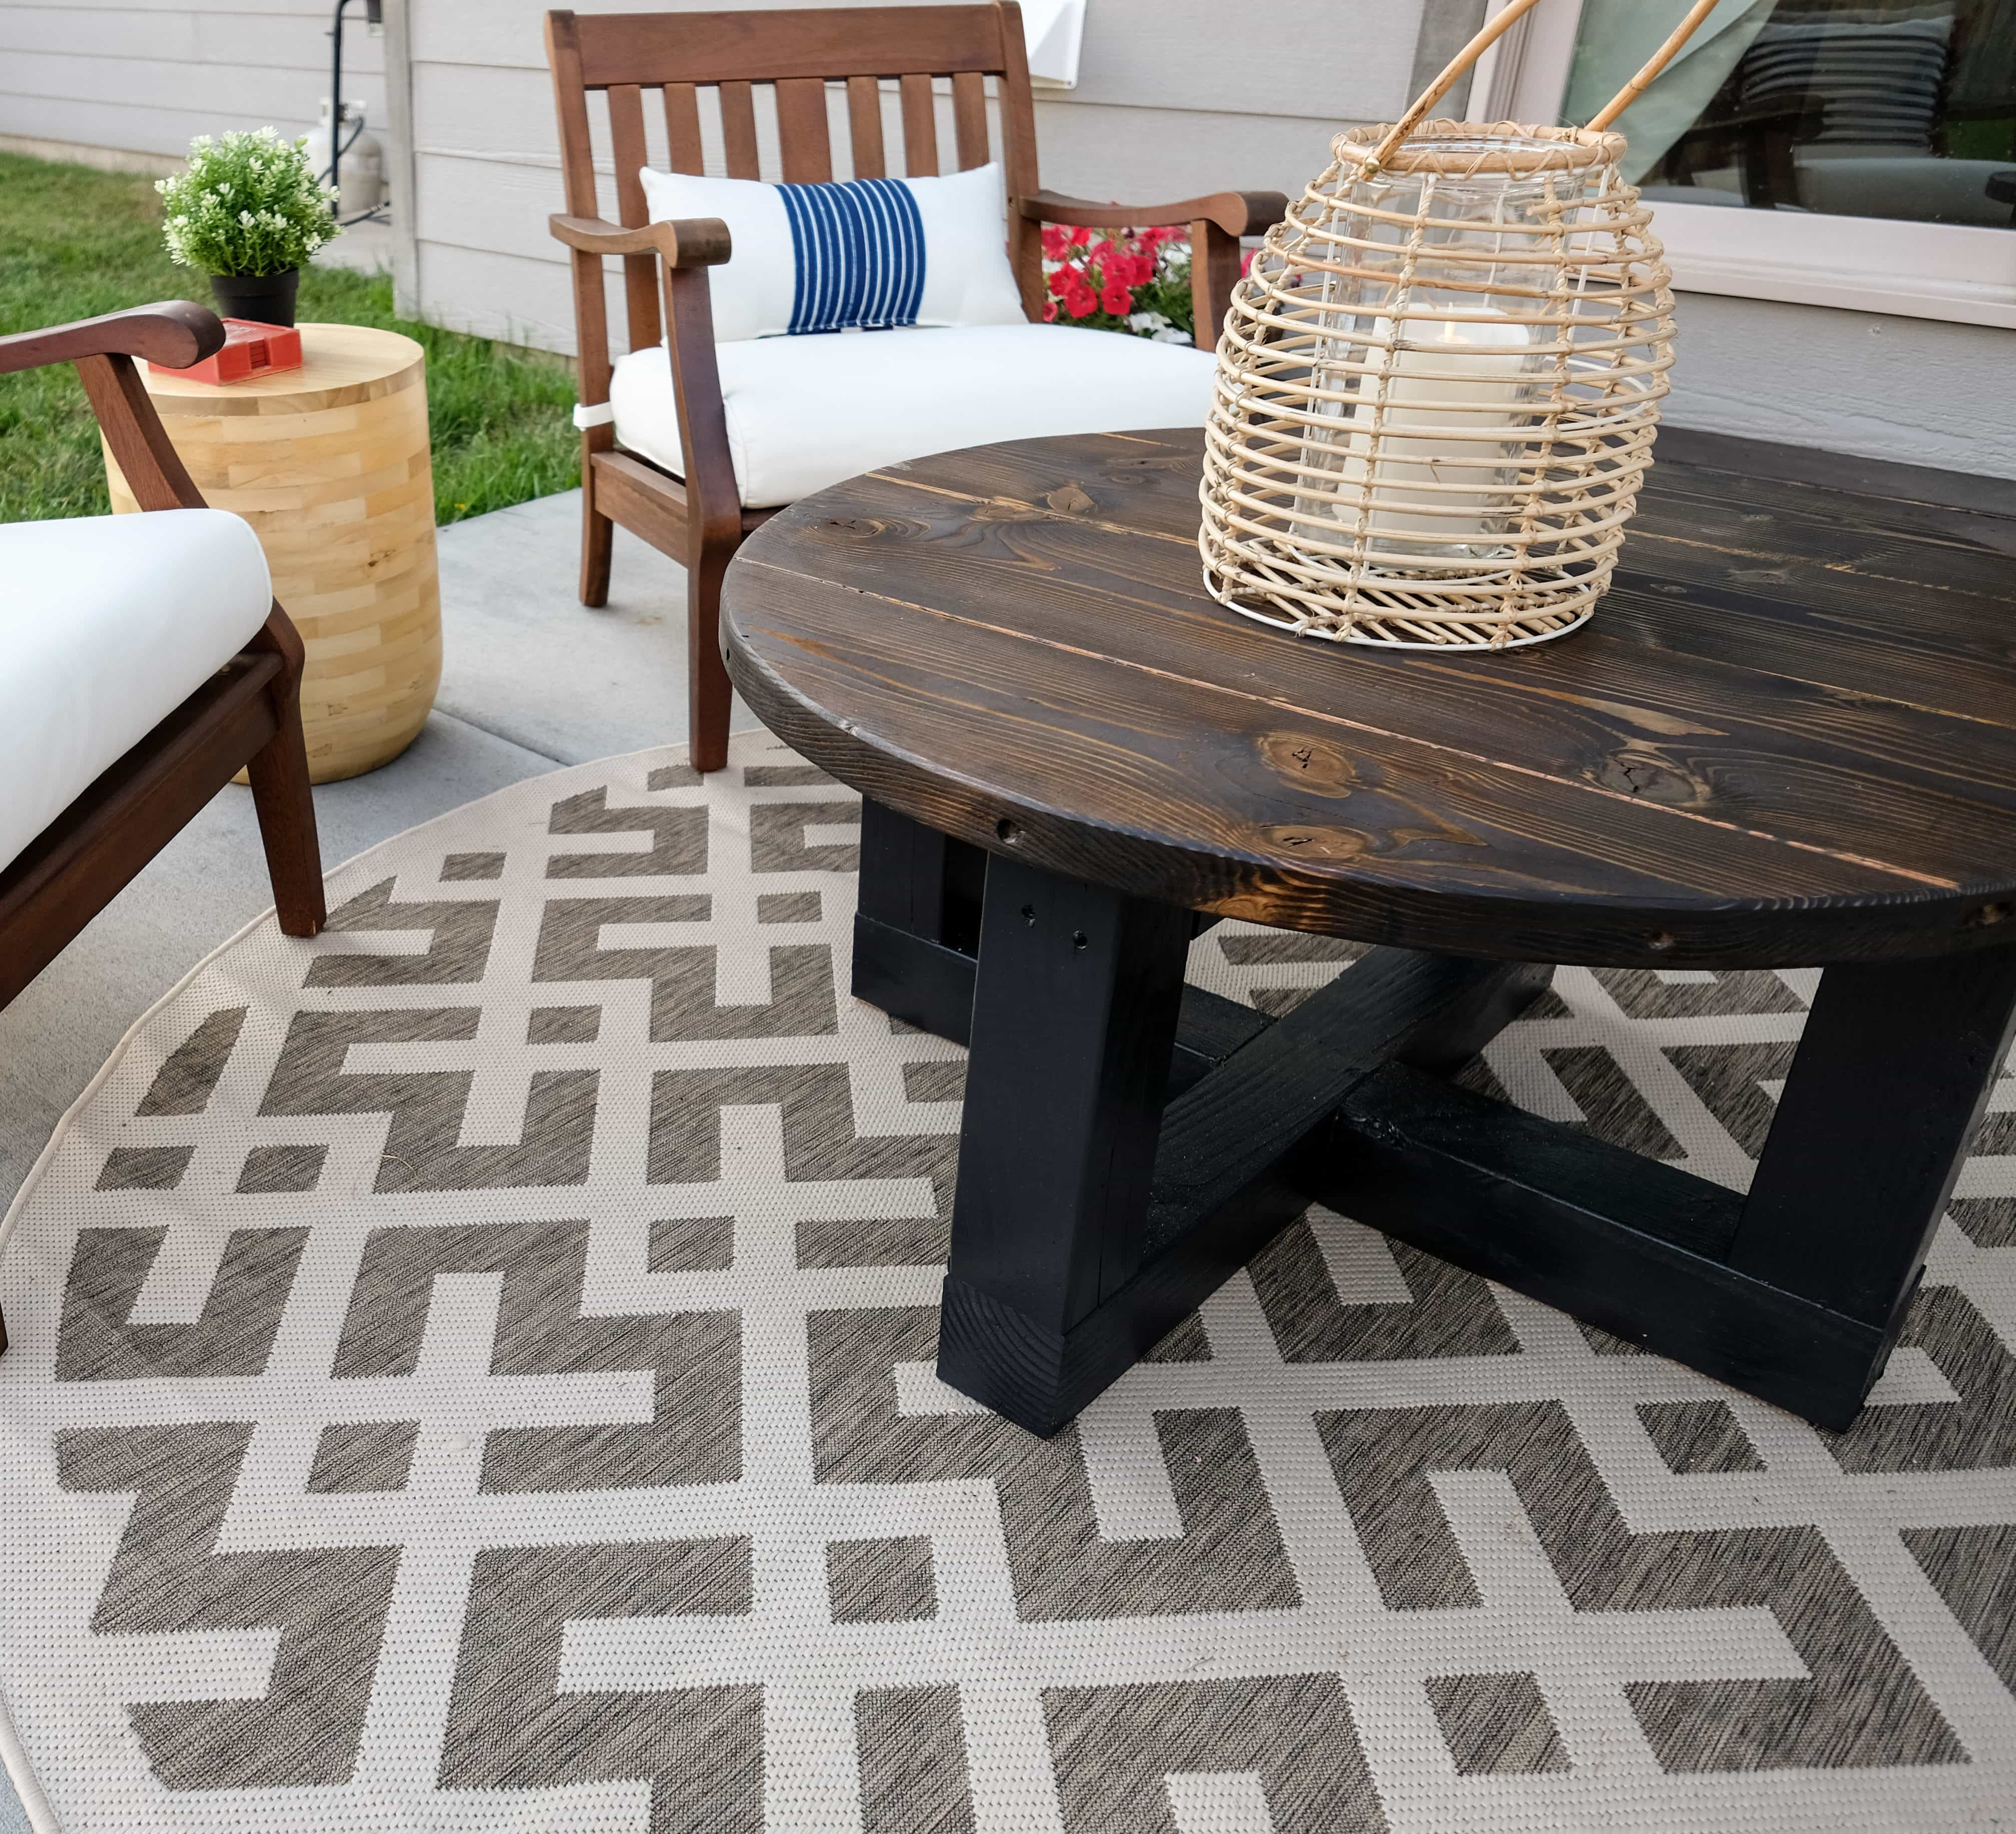 Small Patio Makeover - On A Budget